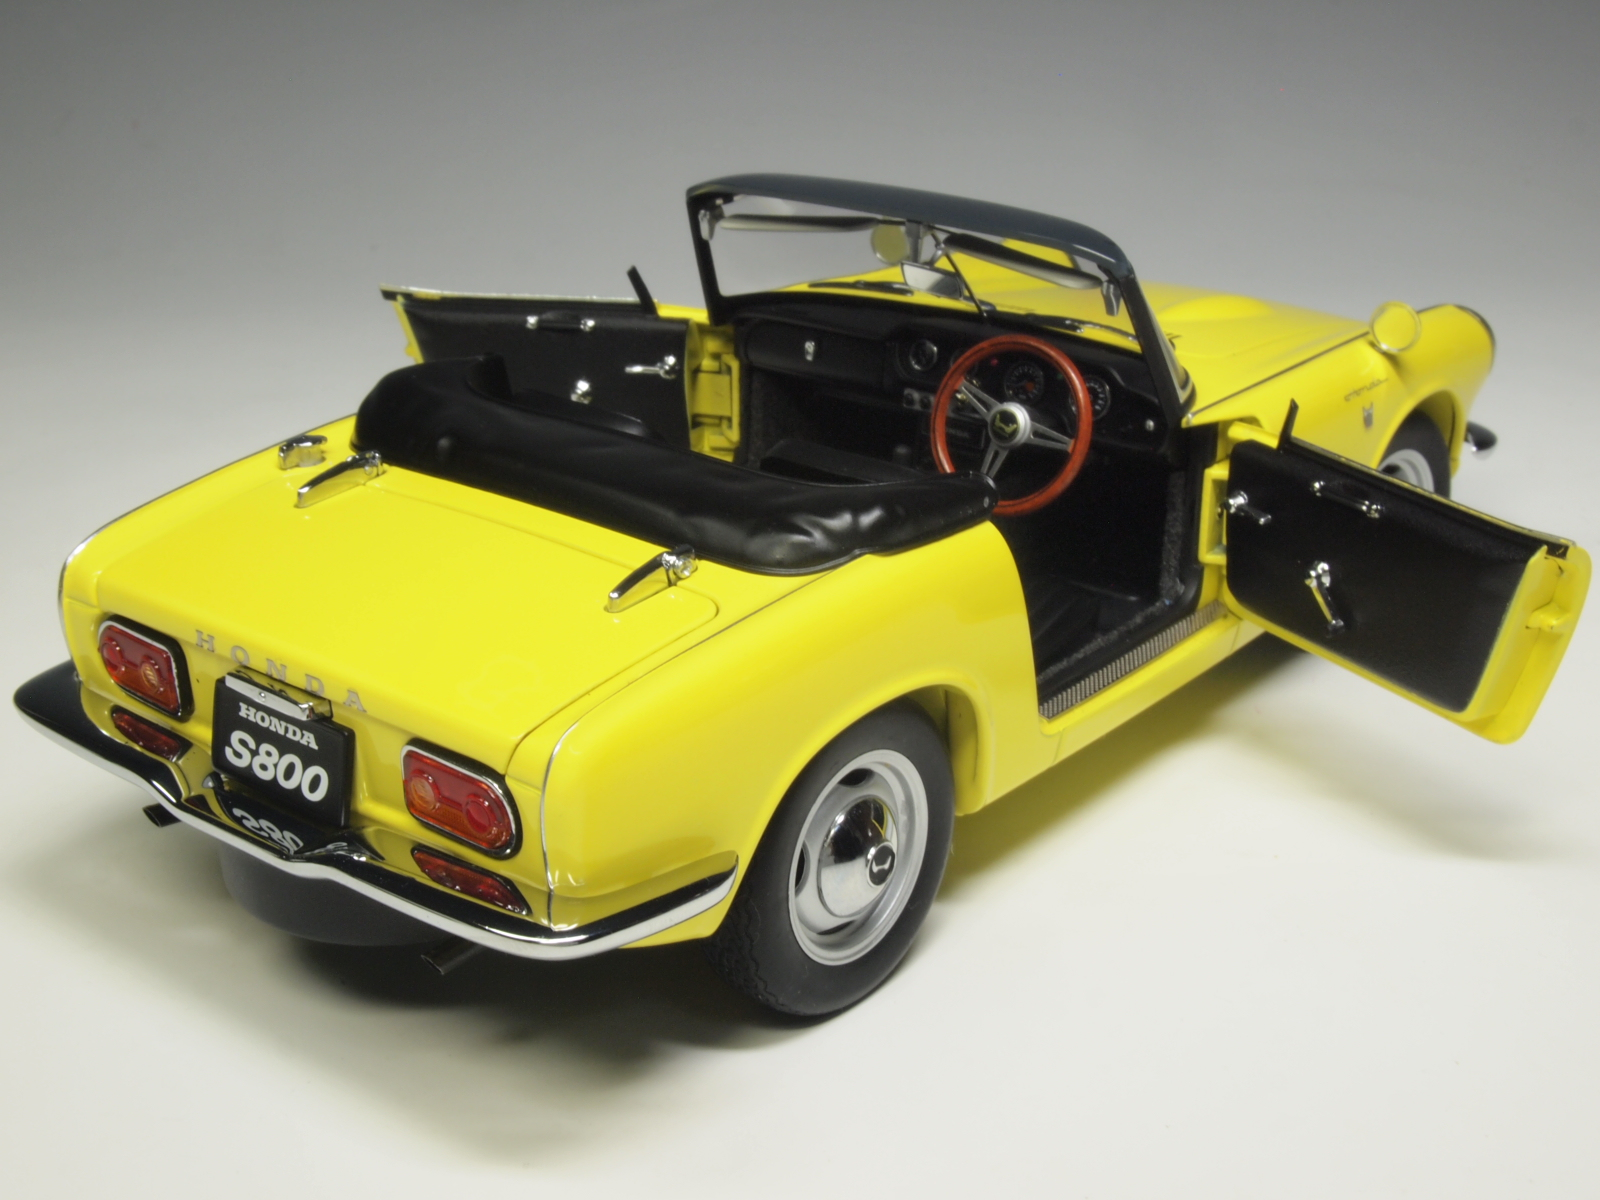 73277 aa73277 honda s800 roadster yellow scale model collection. Black Bedroom Furniture Sets. Home Design Ideas